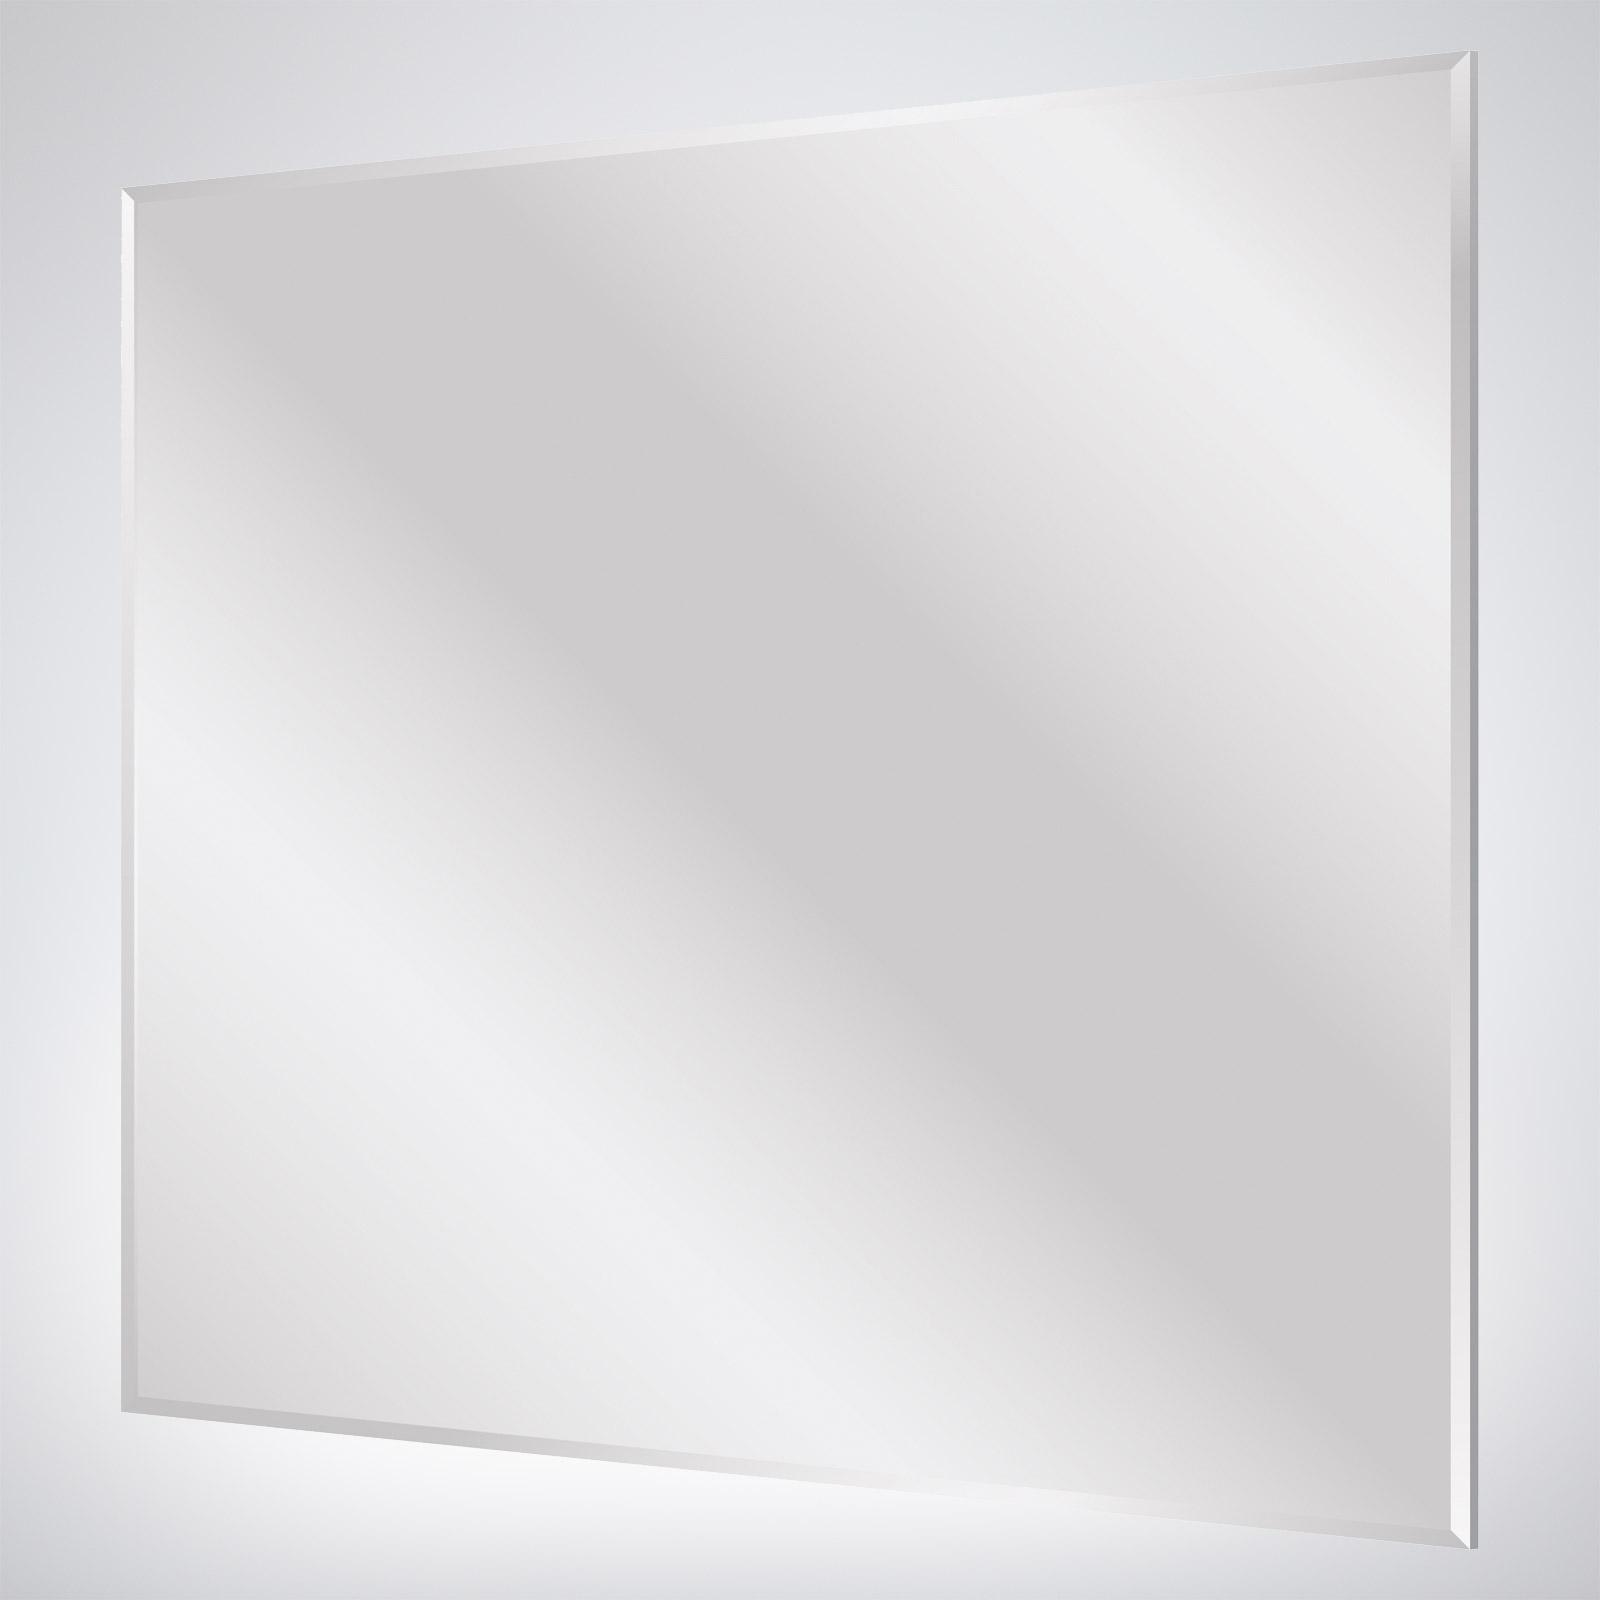 Bevel Edge Mirror 900x900x5mm